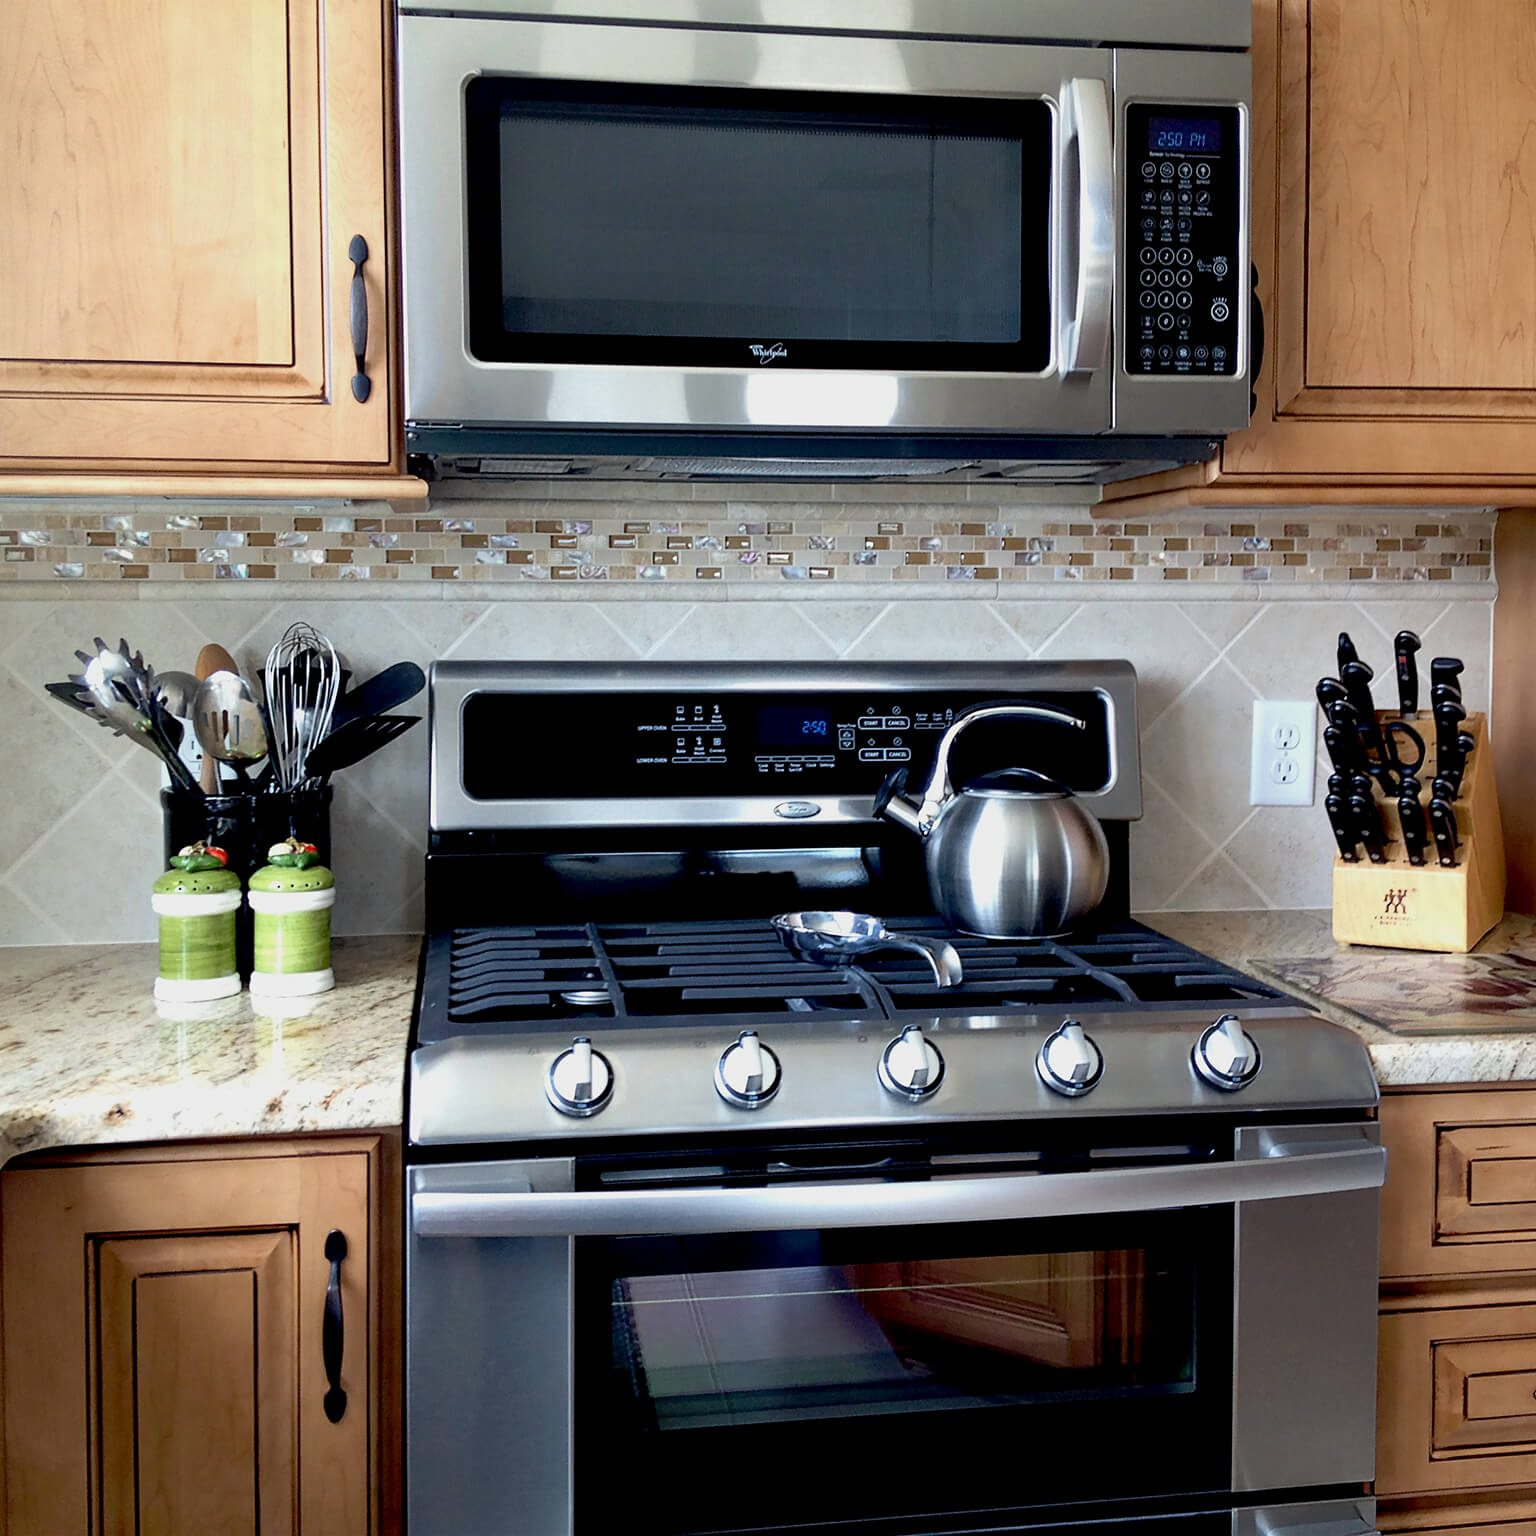 Kinetic Kitchen and Bath Gallery Photo - Kitchen remodel design photo of stove, counters and cabinets